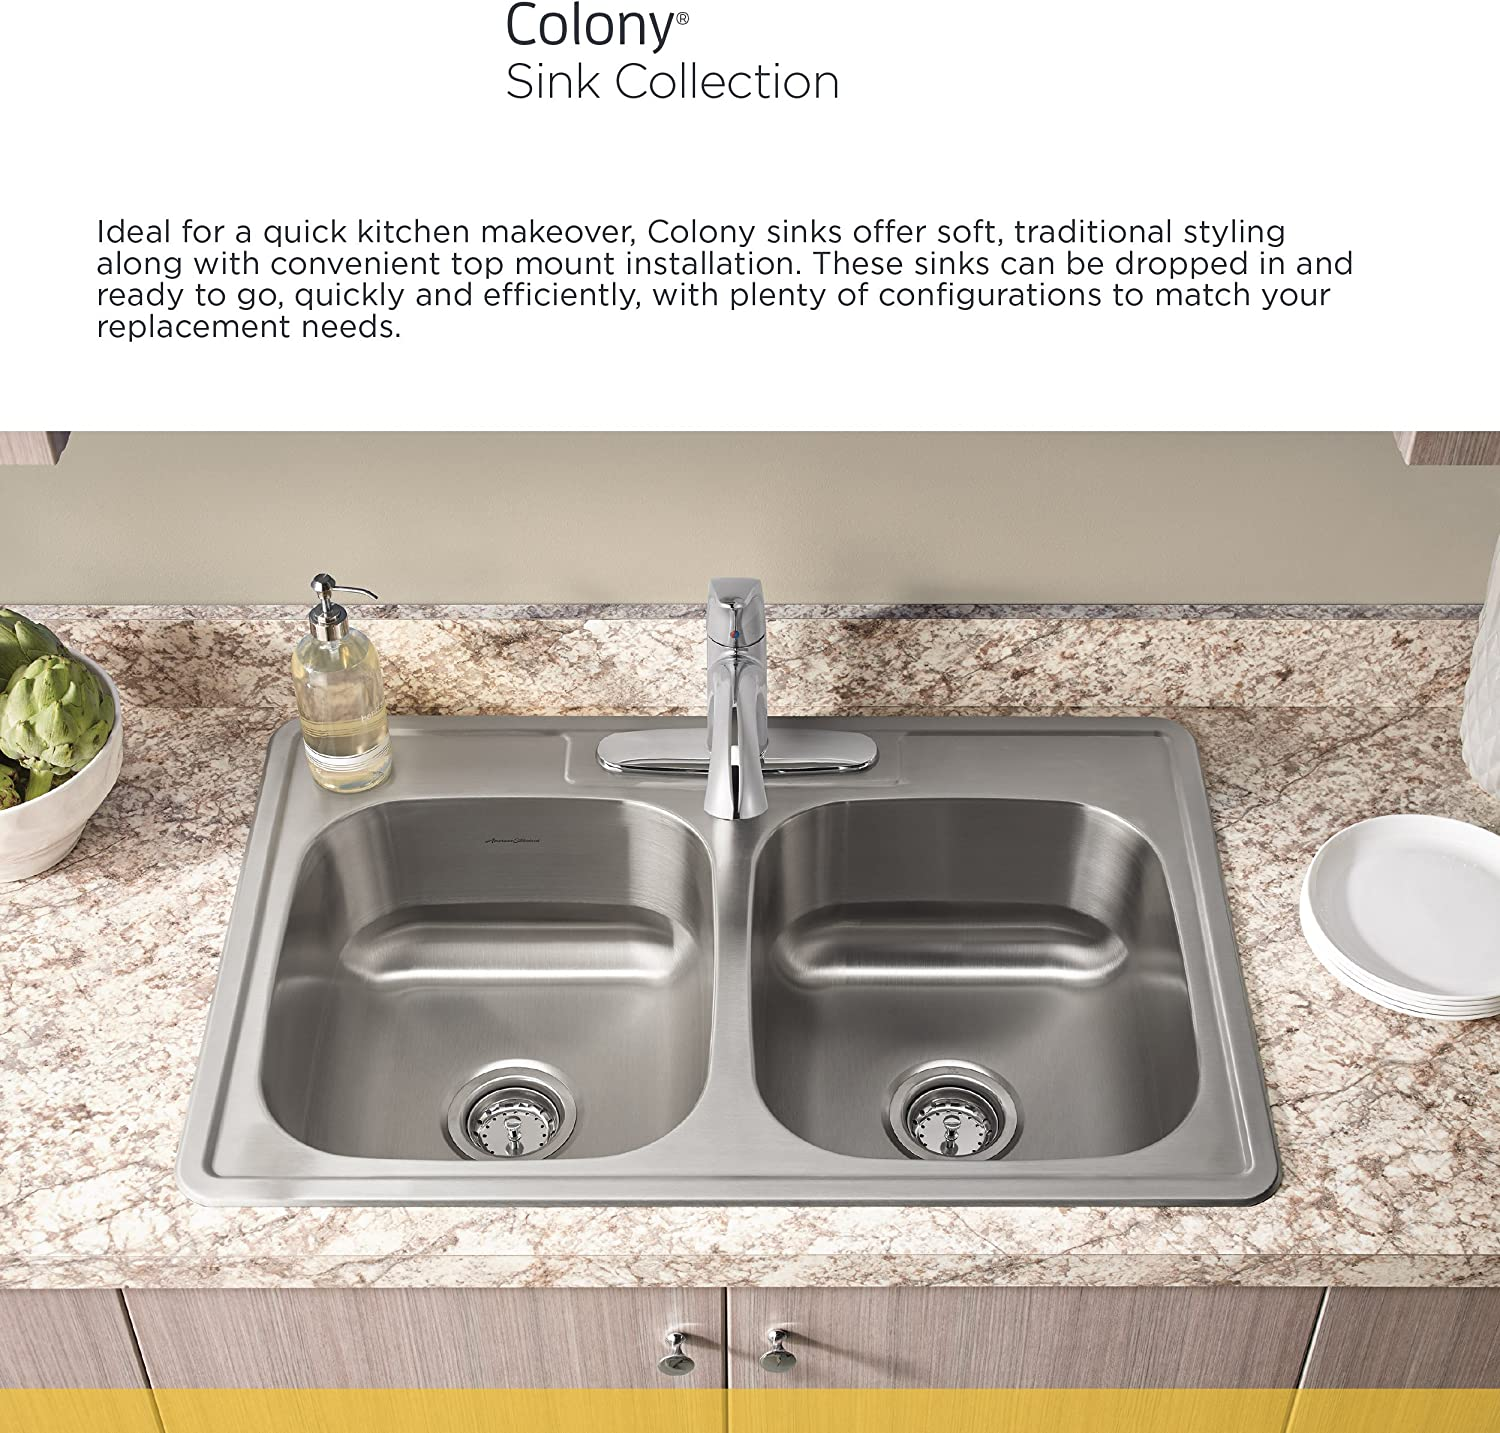 American Standard 20sb 8252283c 075 Colony 25x22 Single Bowl Kitchen Sink Kit With Faucet And Drain Stainless Steel Amazon Com